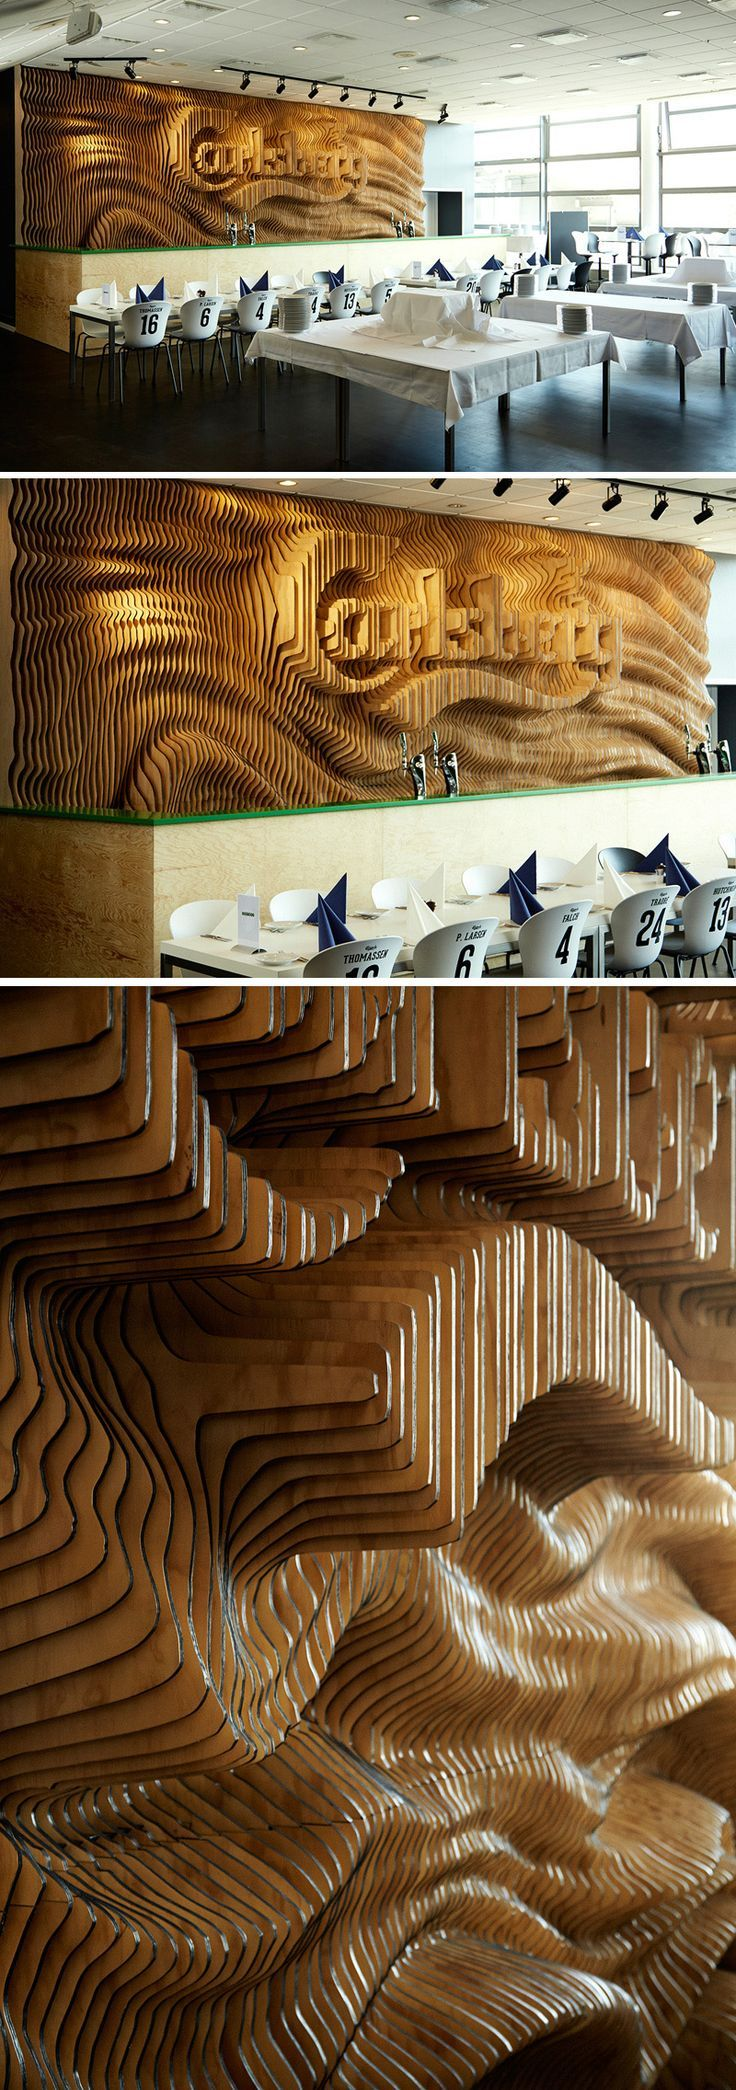 Creative agency Wonderland, have designed an organically shaped wooden wall, displaying the Carlsberg logo, for the bar at the Hall of Carlsberg in Copenhagen.